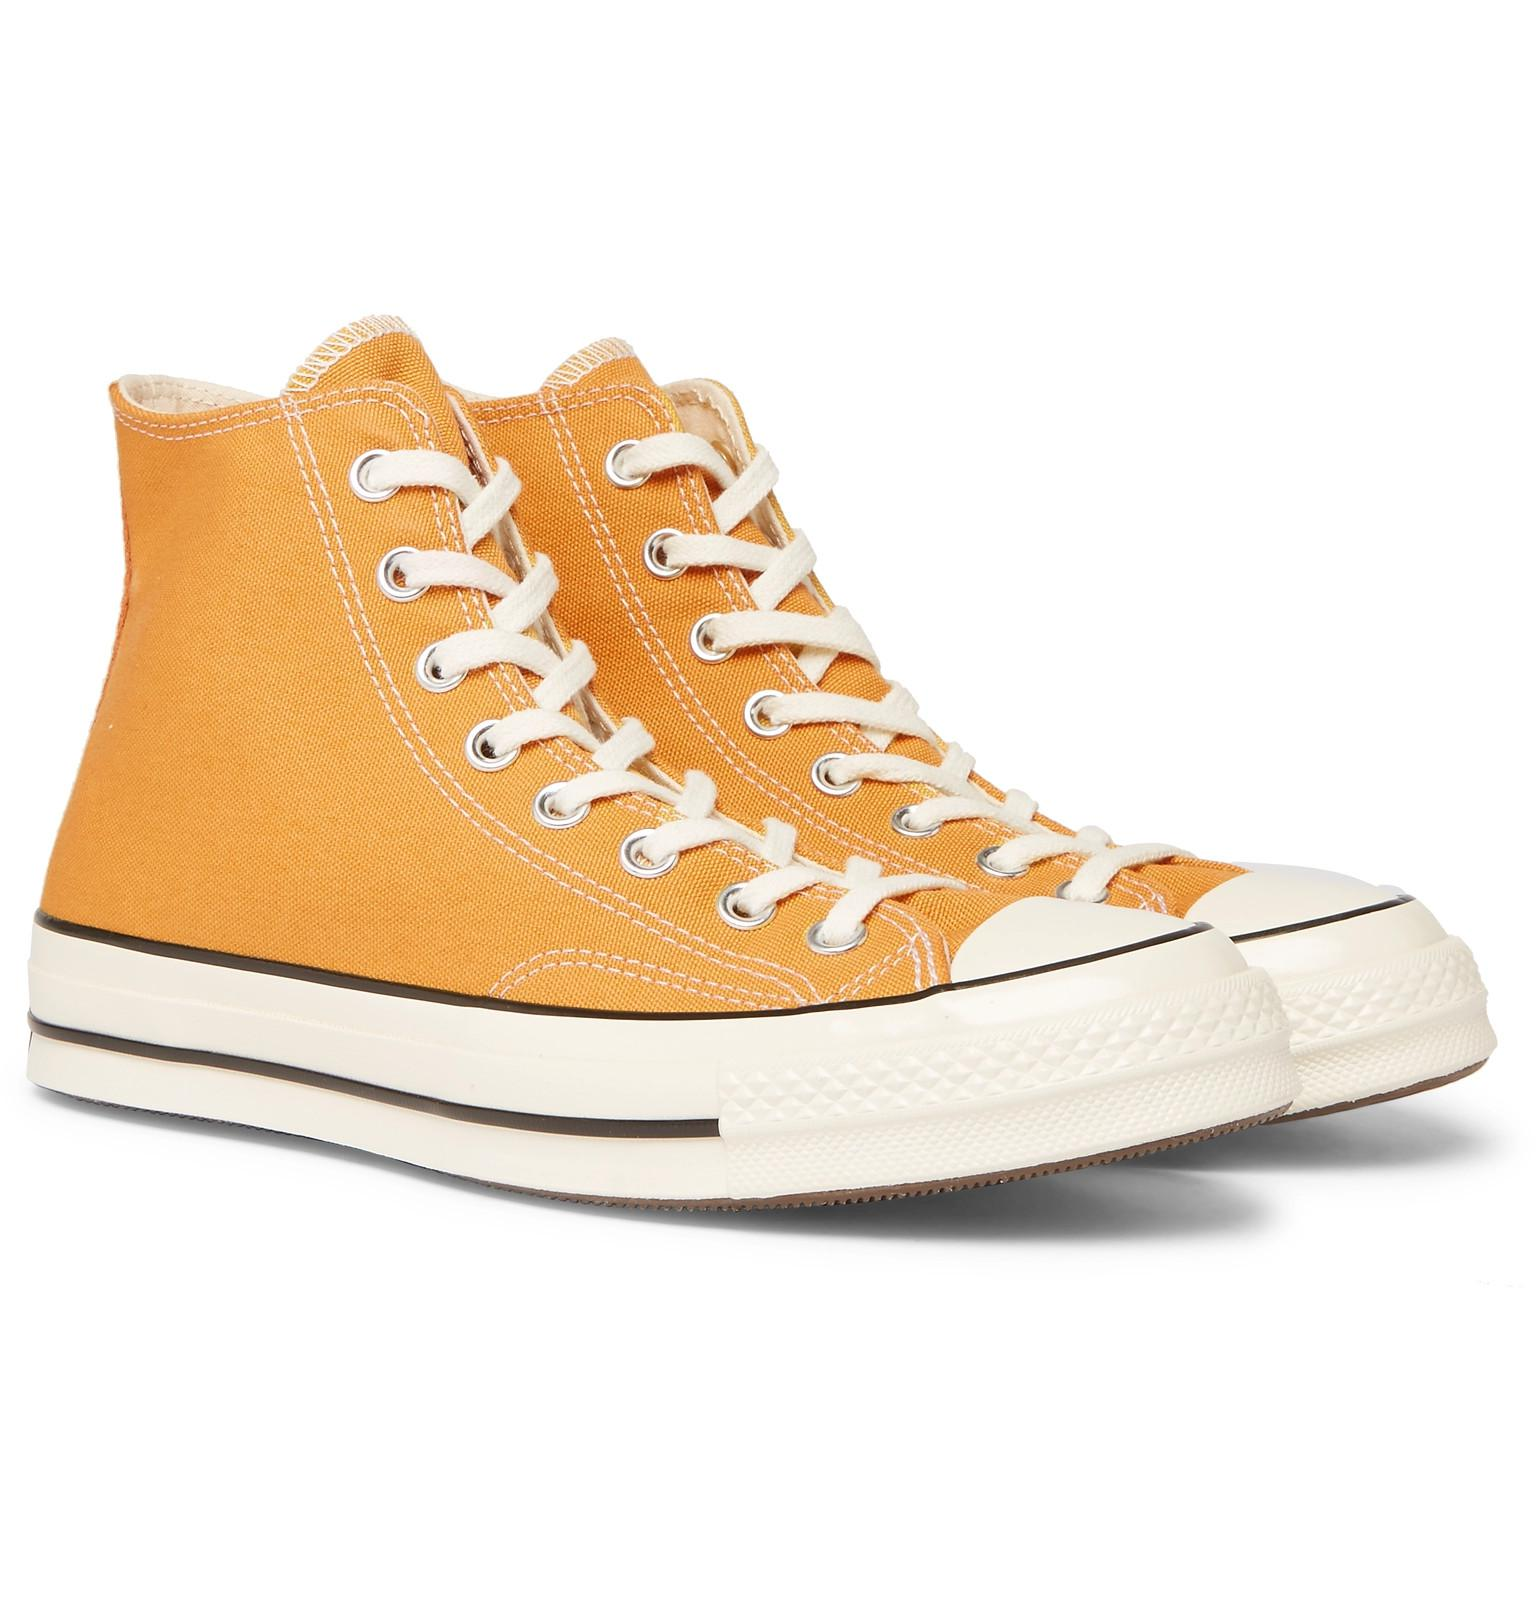 fea18ba9b13e3a Lyst - Converse Chuck Taylor 1970s Hi in Yellow for Men - Save 69%